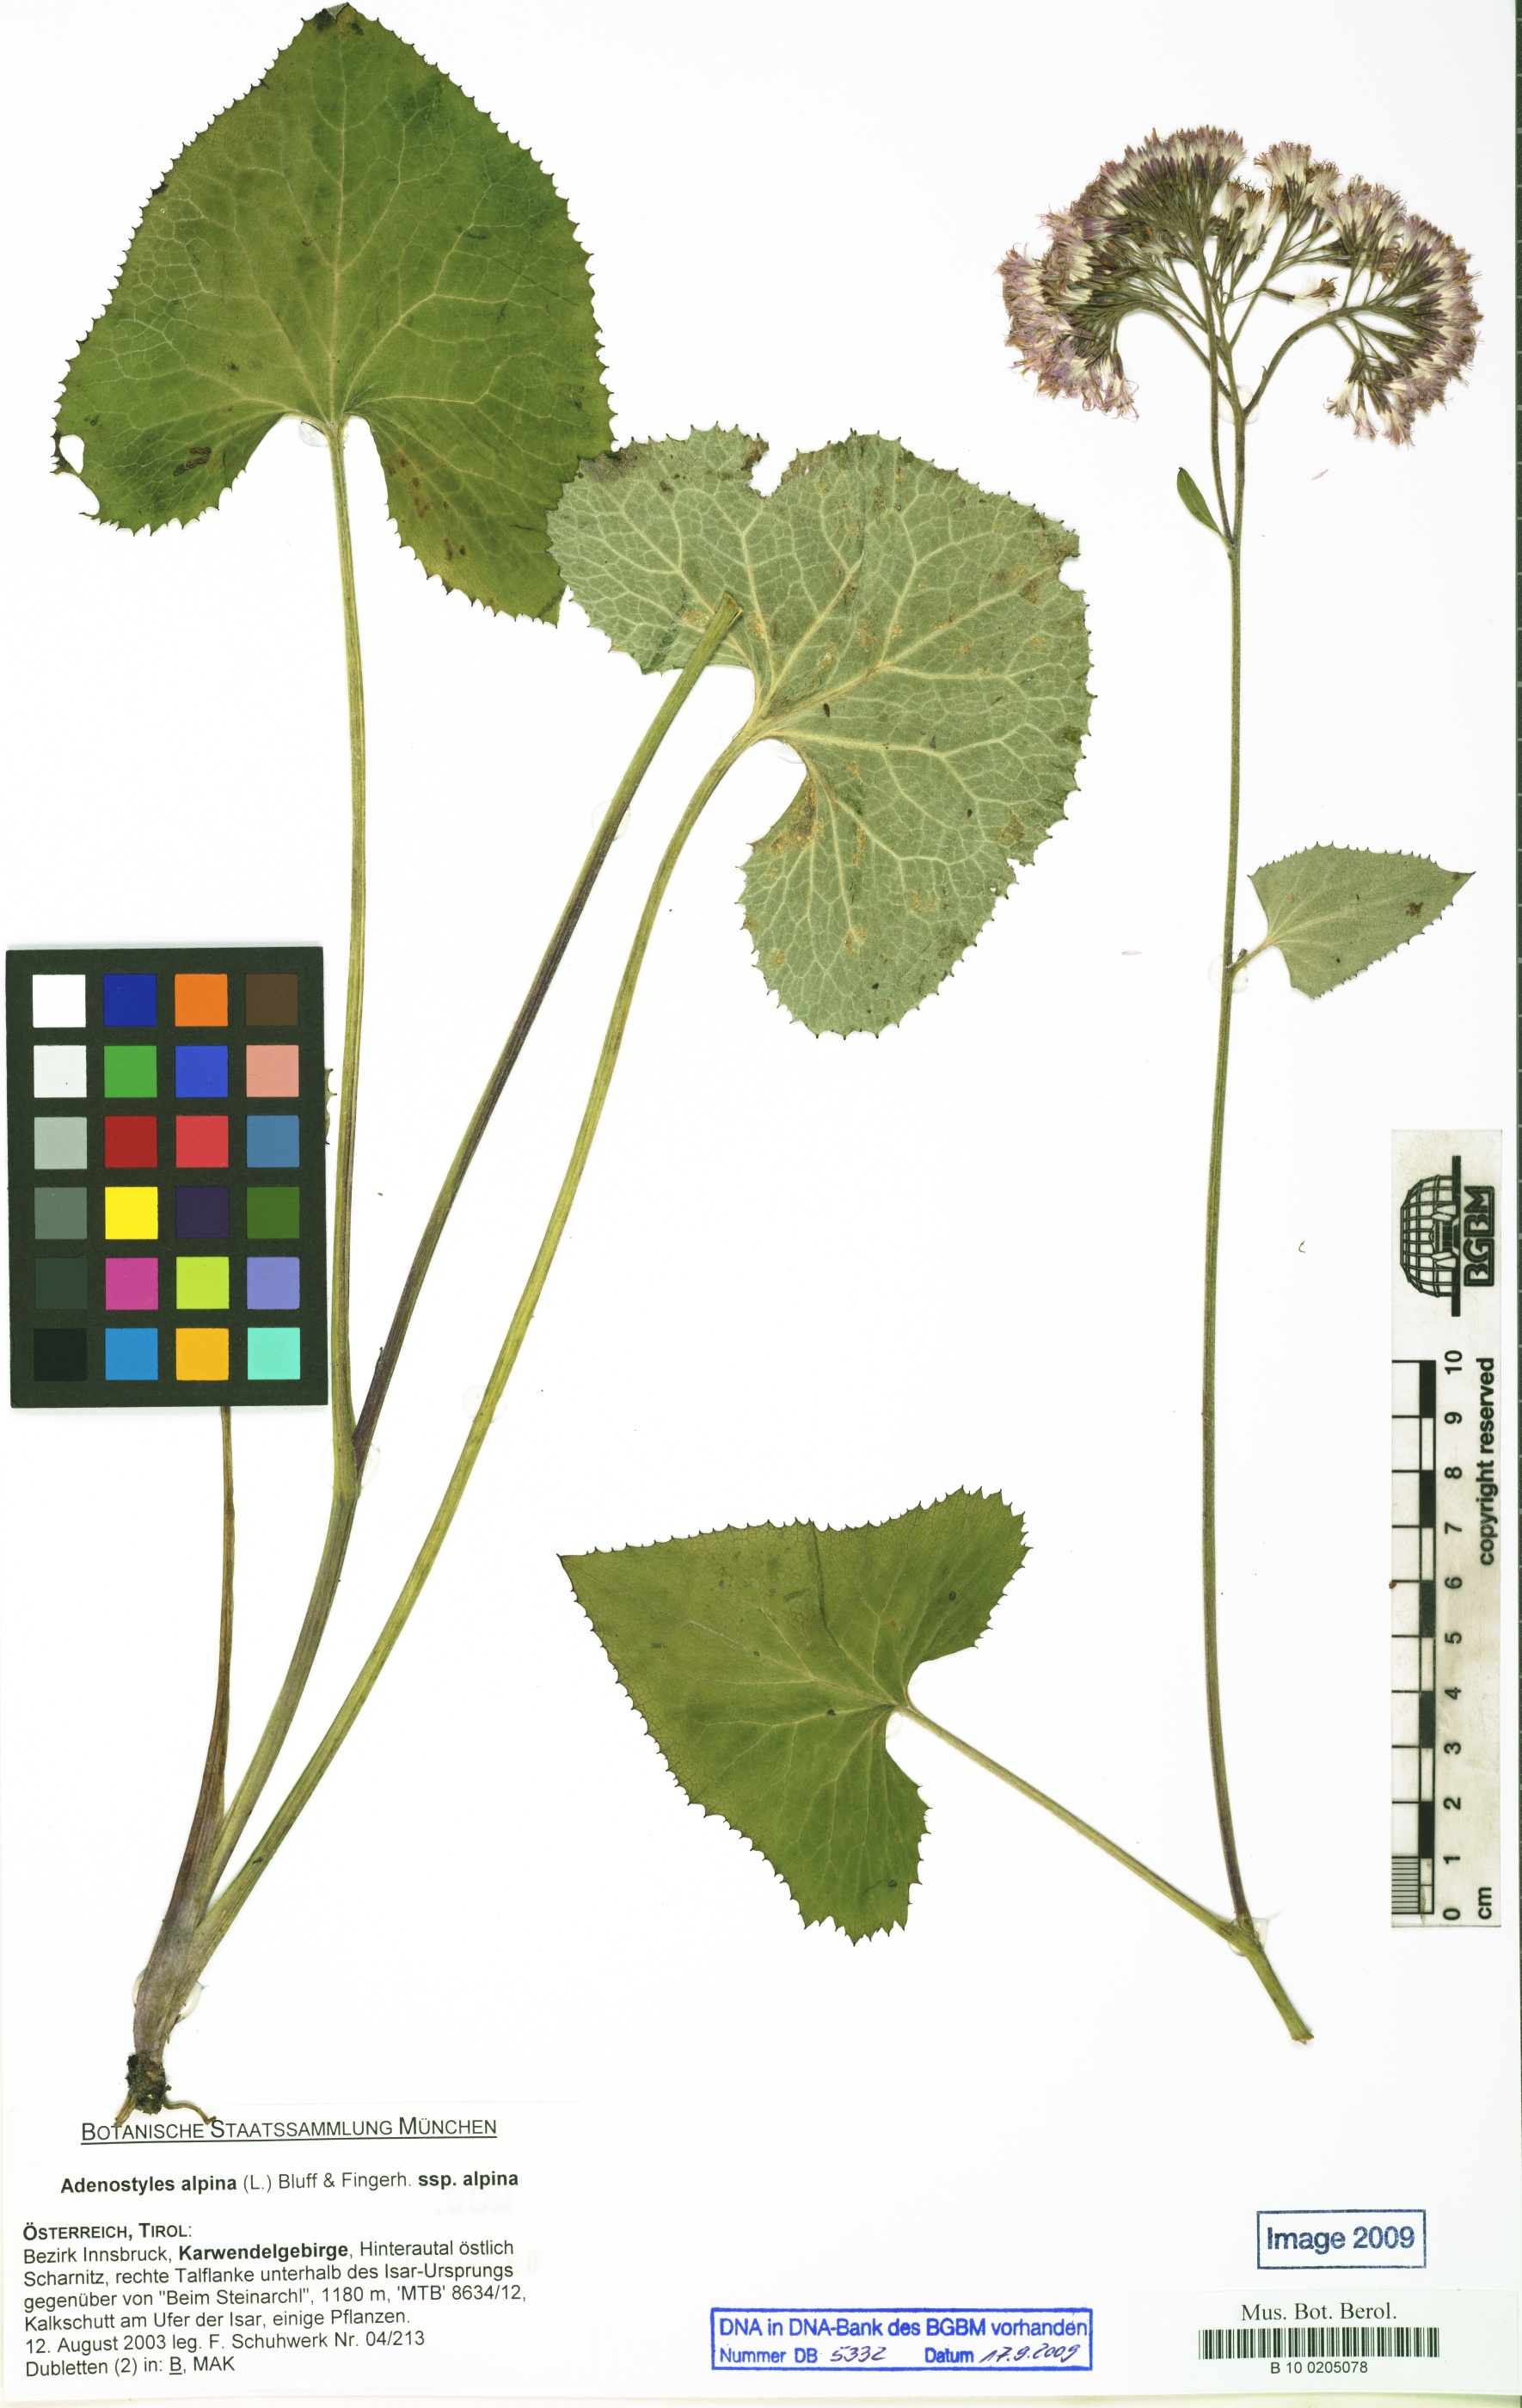 © Röpert, D. (Ed.) 2000- (continuously updated): Digital specimen images at the Herbarium Berolinense. - Published on the Internet http://ww2.bgbm.org/herbarium/ (Barcode: B 10 0205078 / ImageId: 297038) [accessed 25-Dec-12].<br>